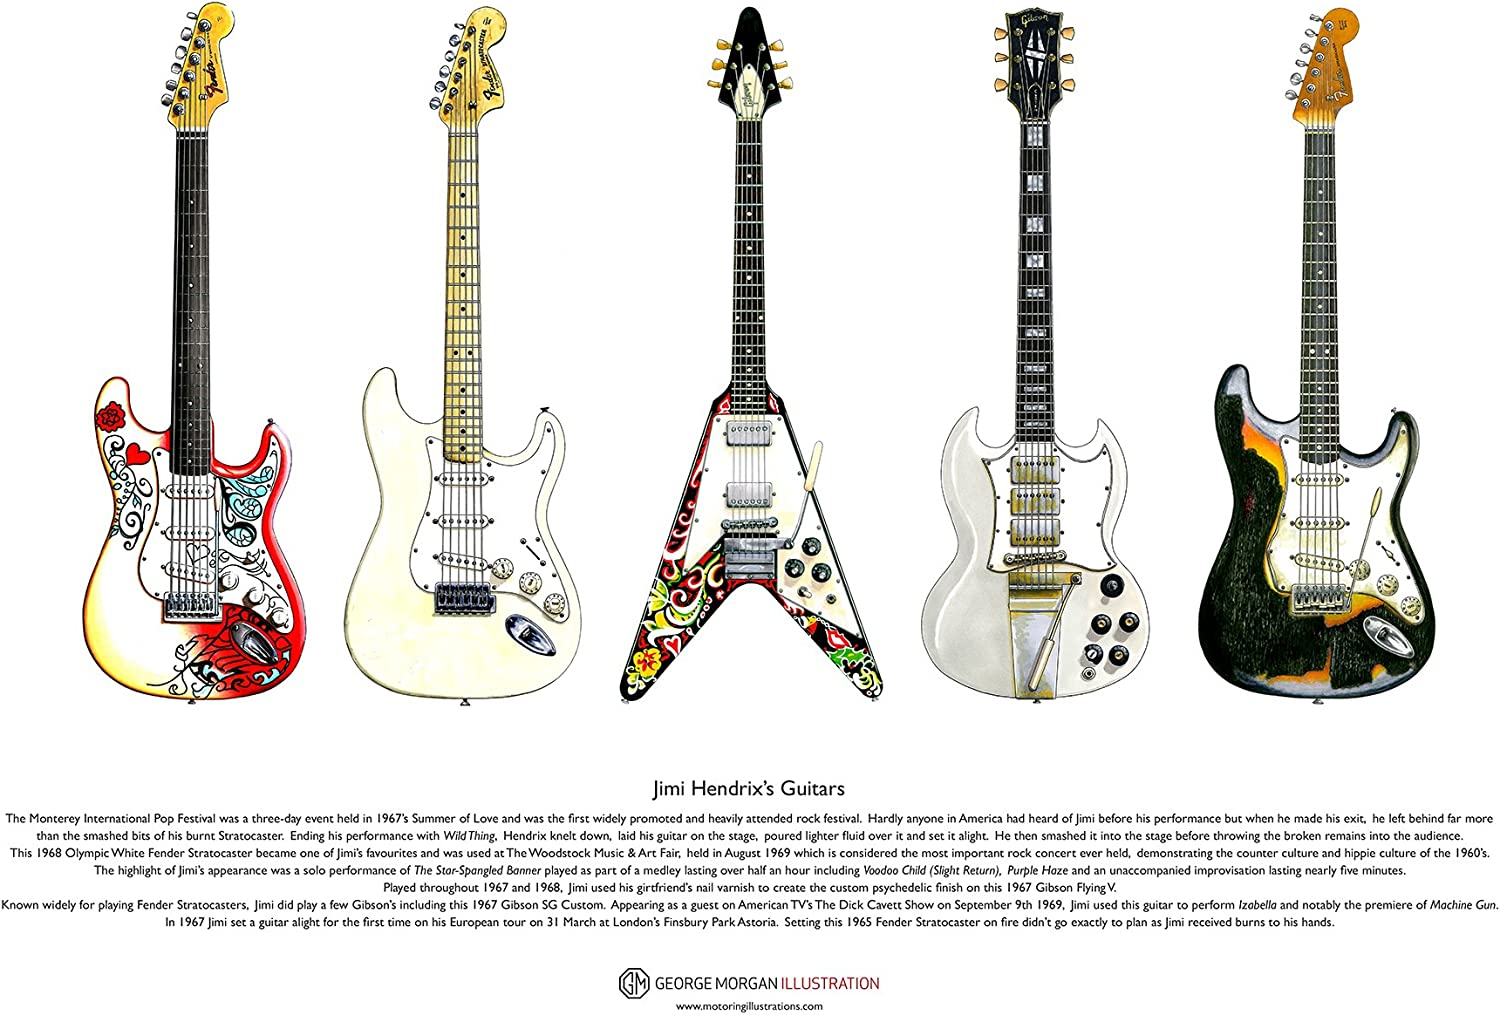 George Morgan Illustration Las Guitarras de Jimi Hendrix Cartel ...